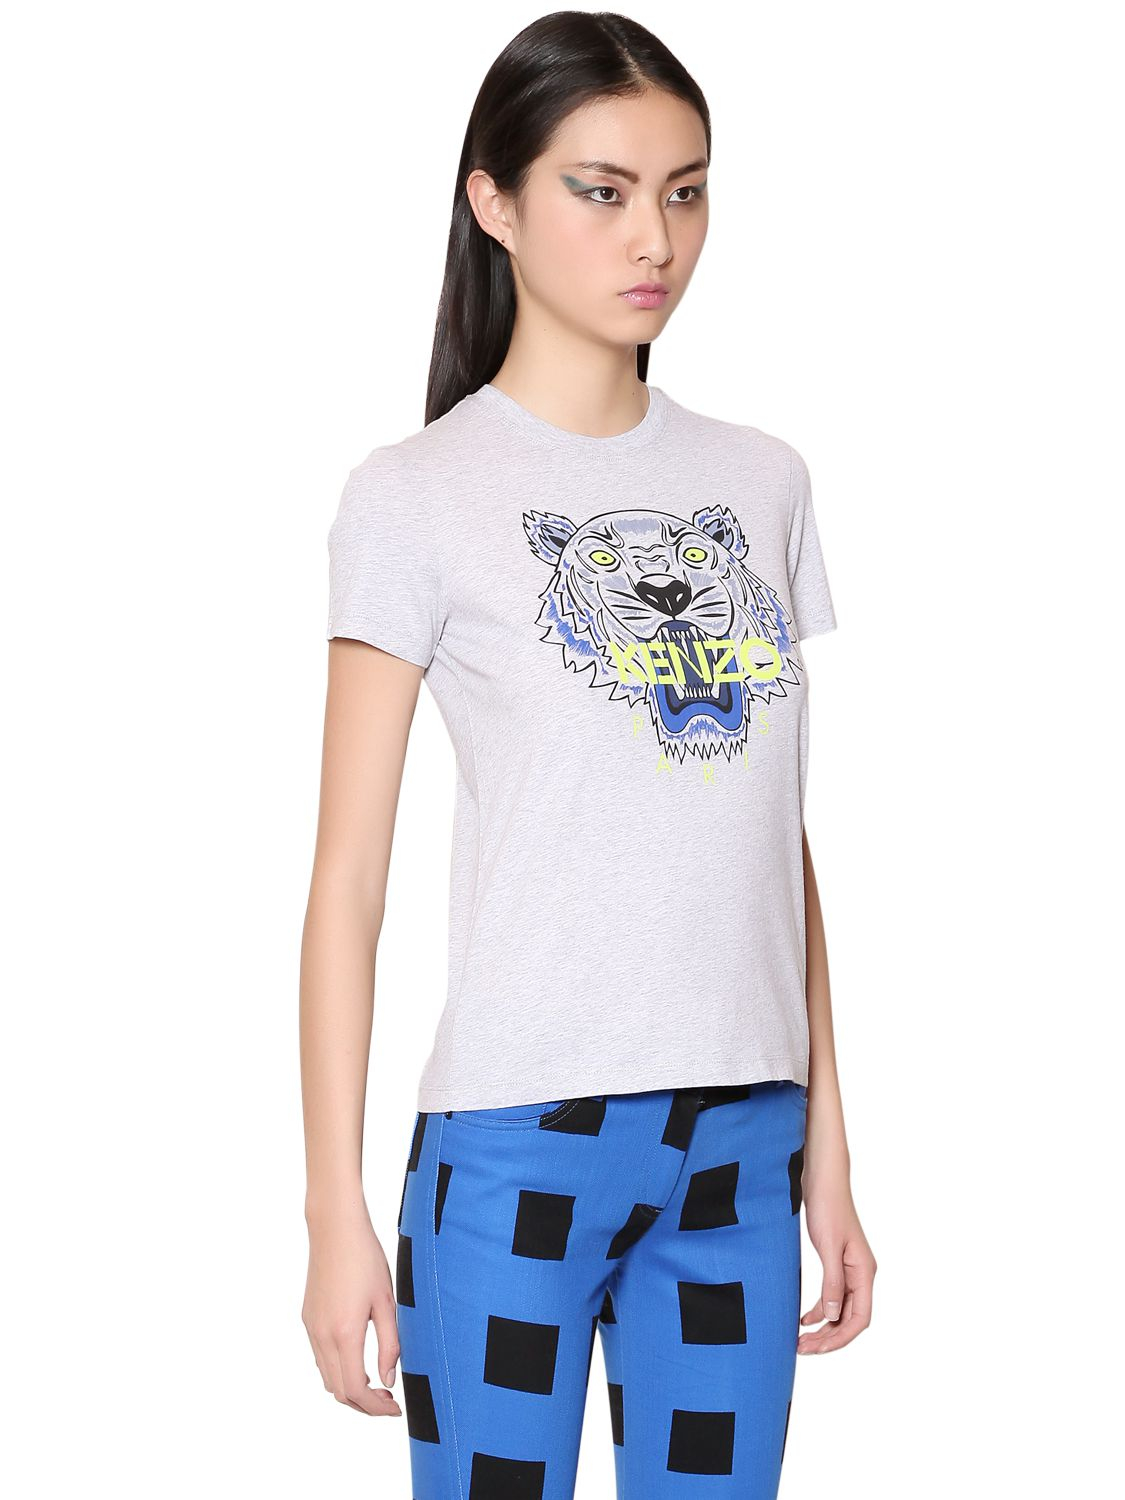 Lyst - KENZO Tiger Printed Cotton Tshirt in Gray 03095e3675f